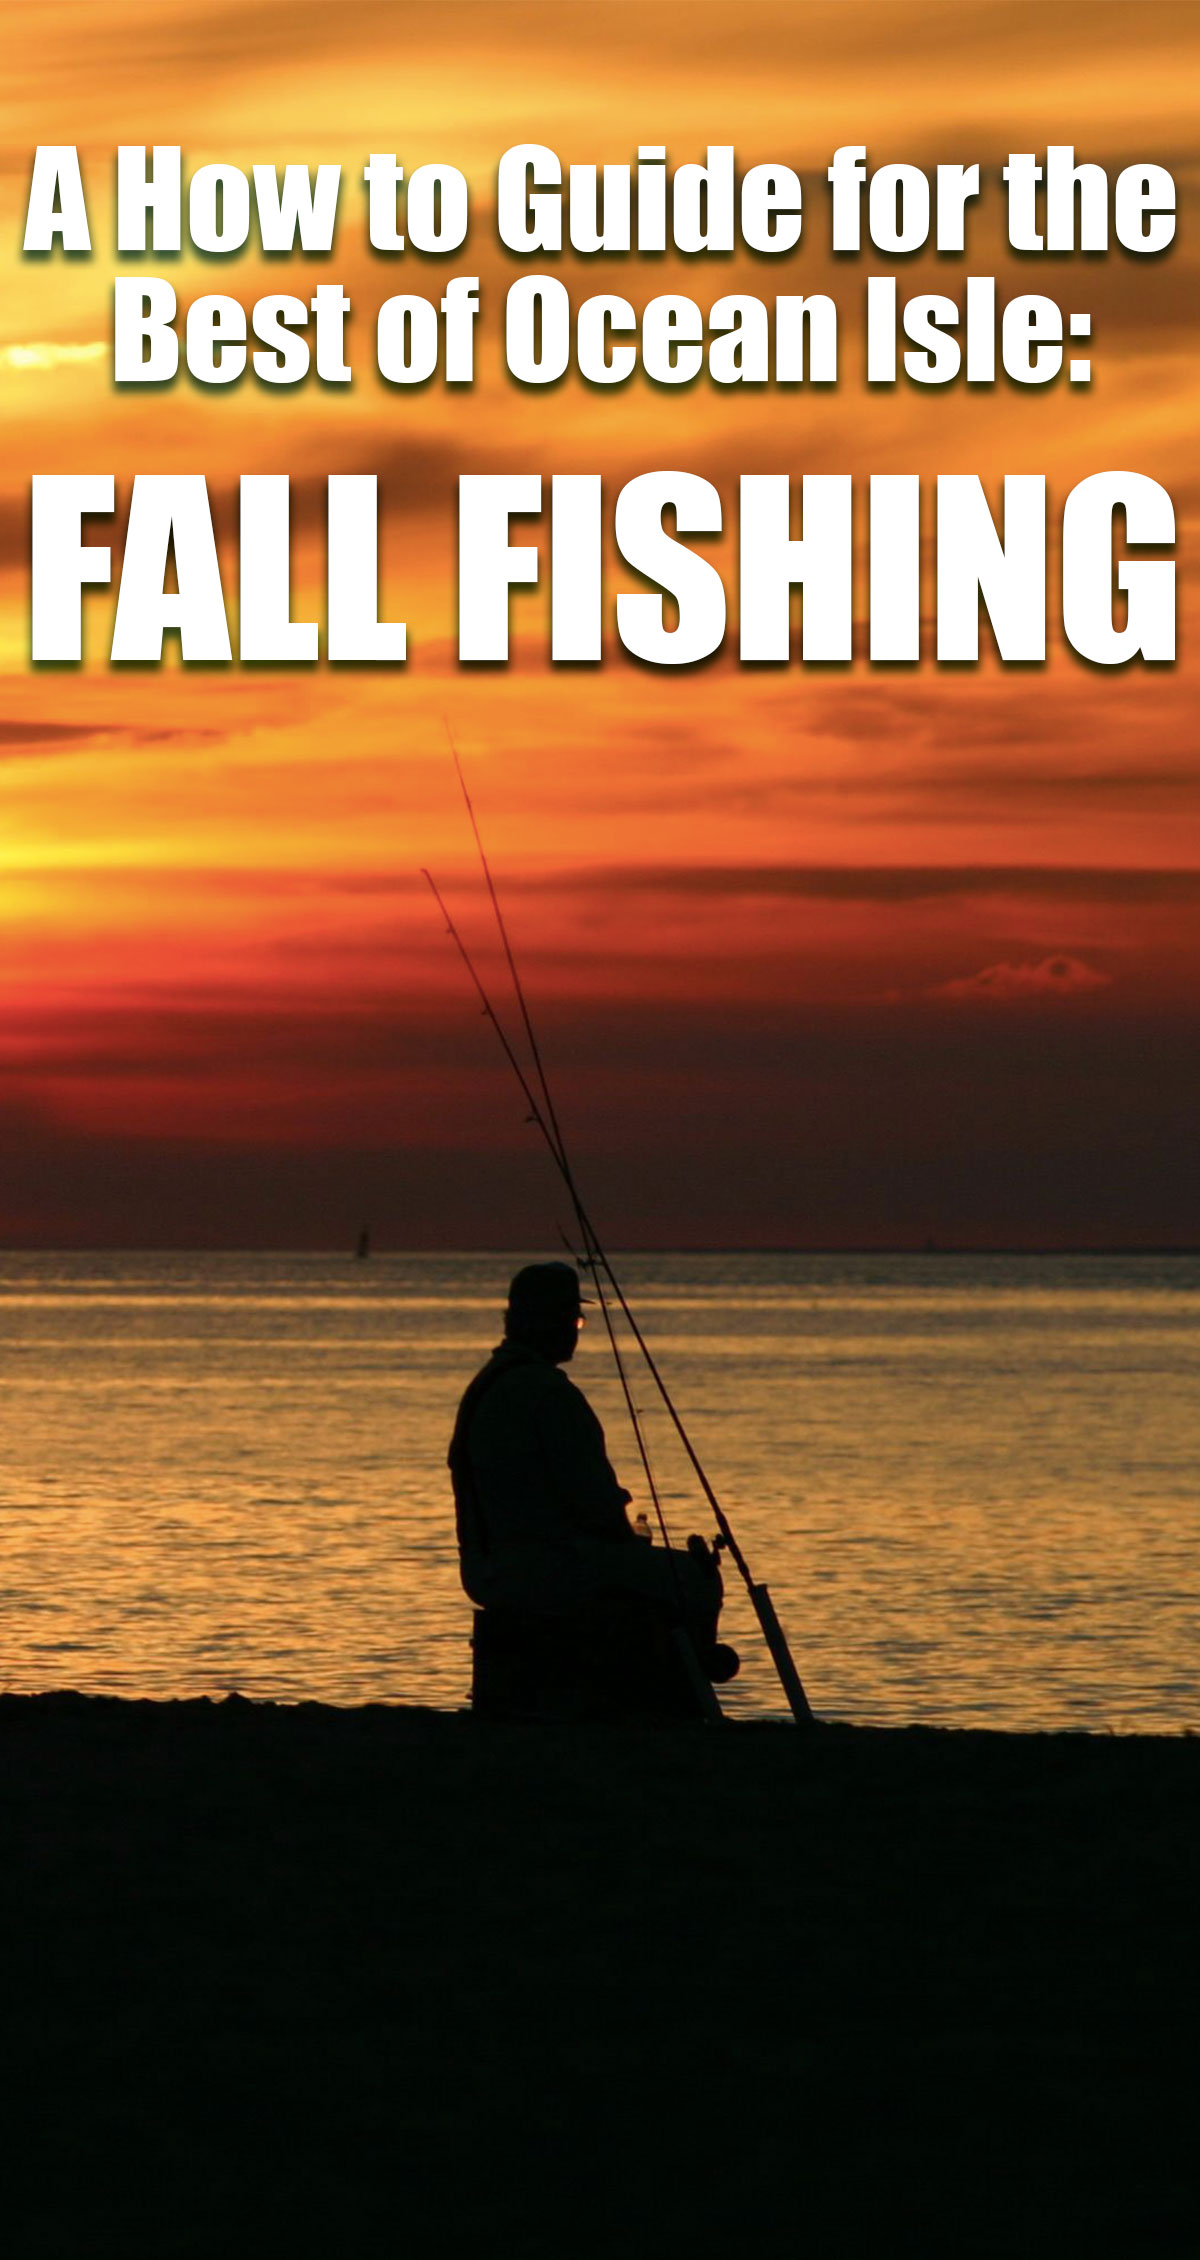 A How to Guide for the Best of Ocean Isle: Fall Fishing Pin